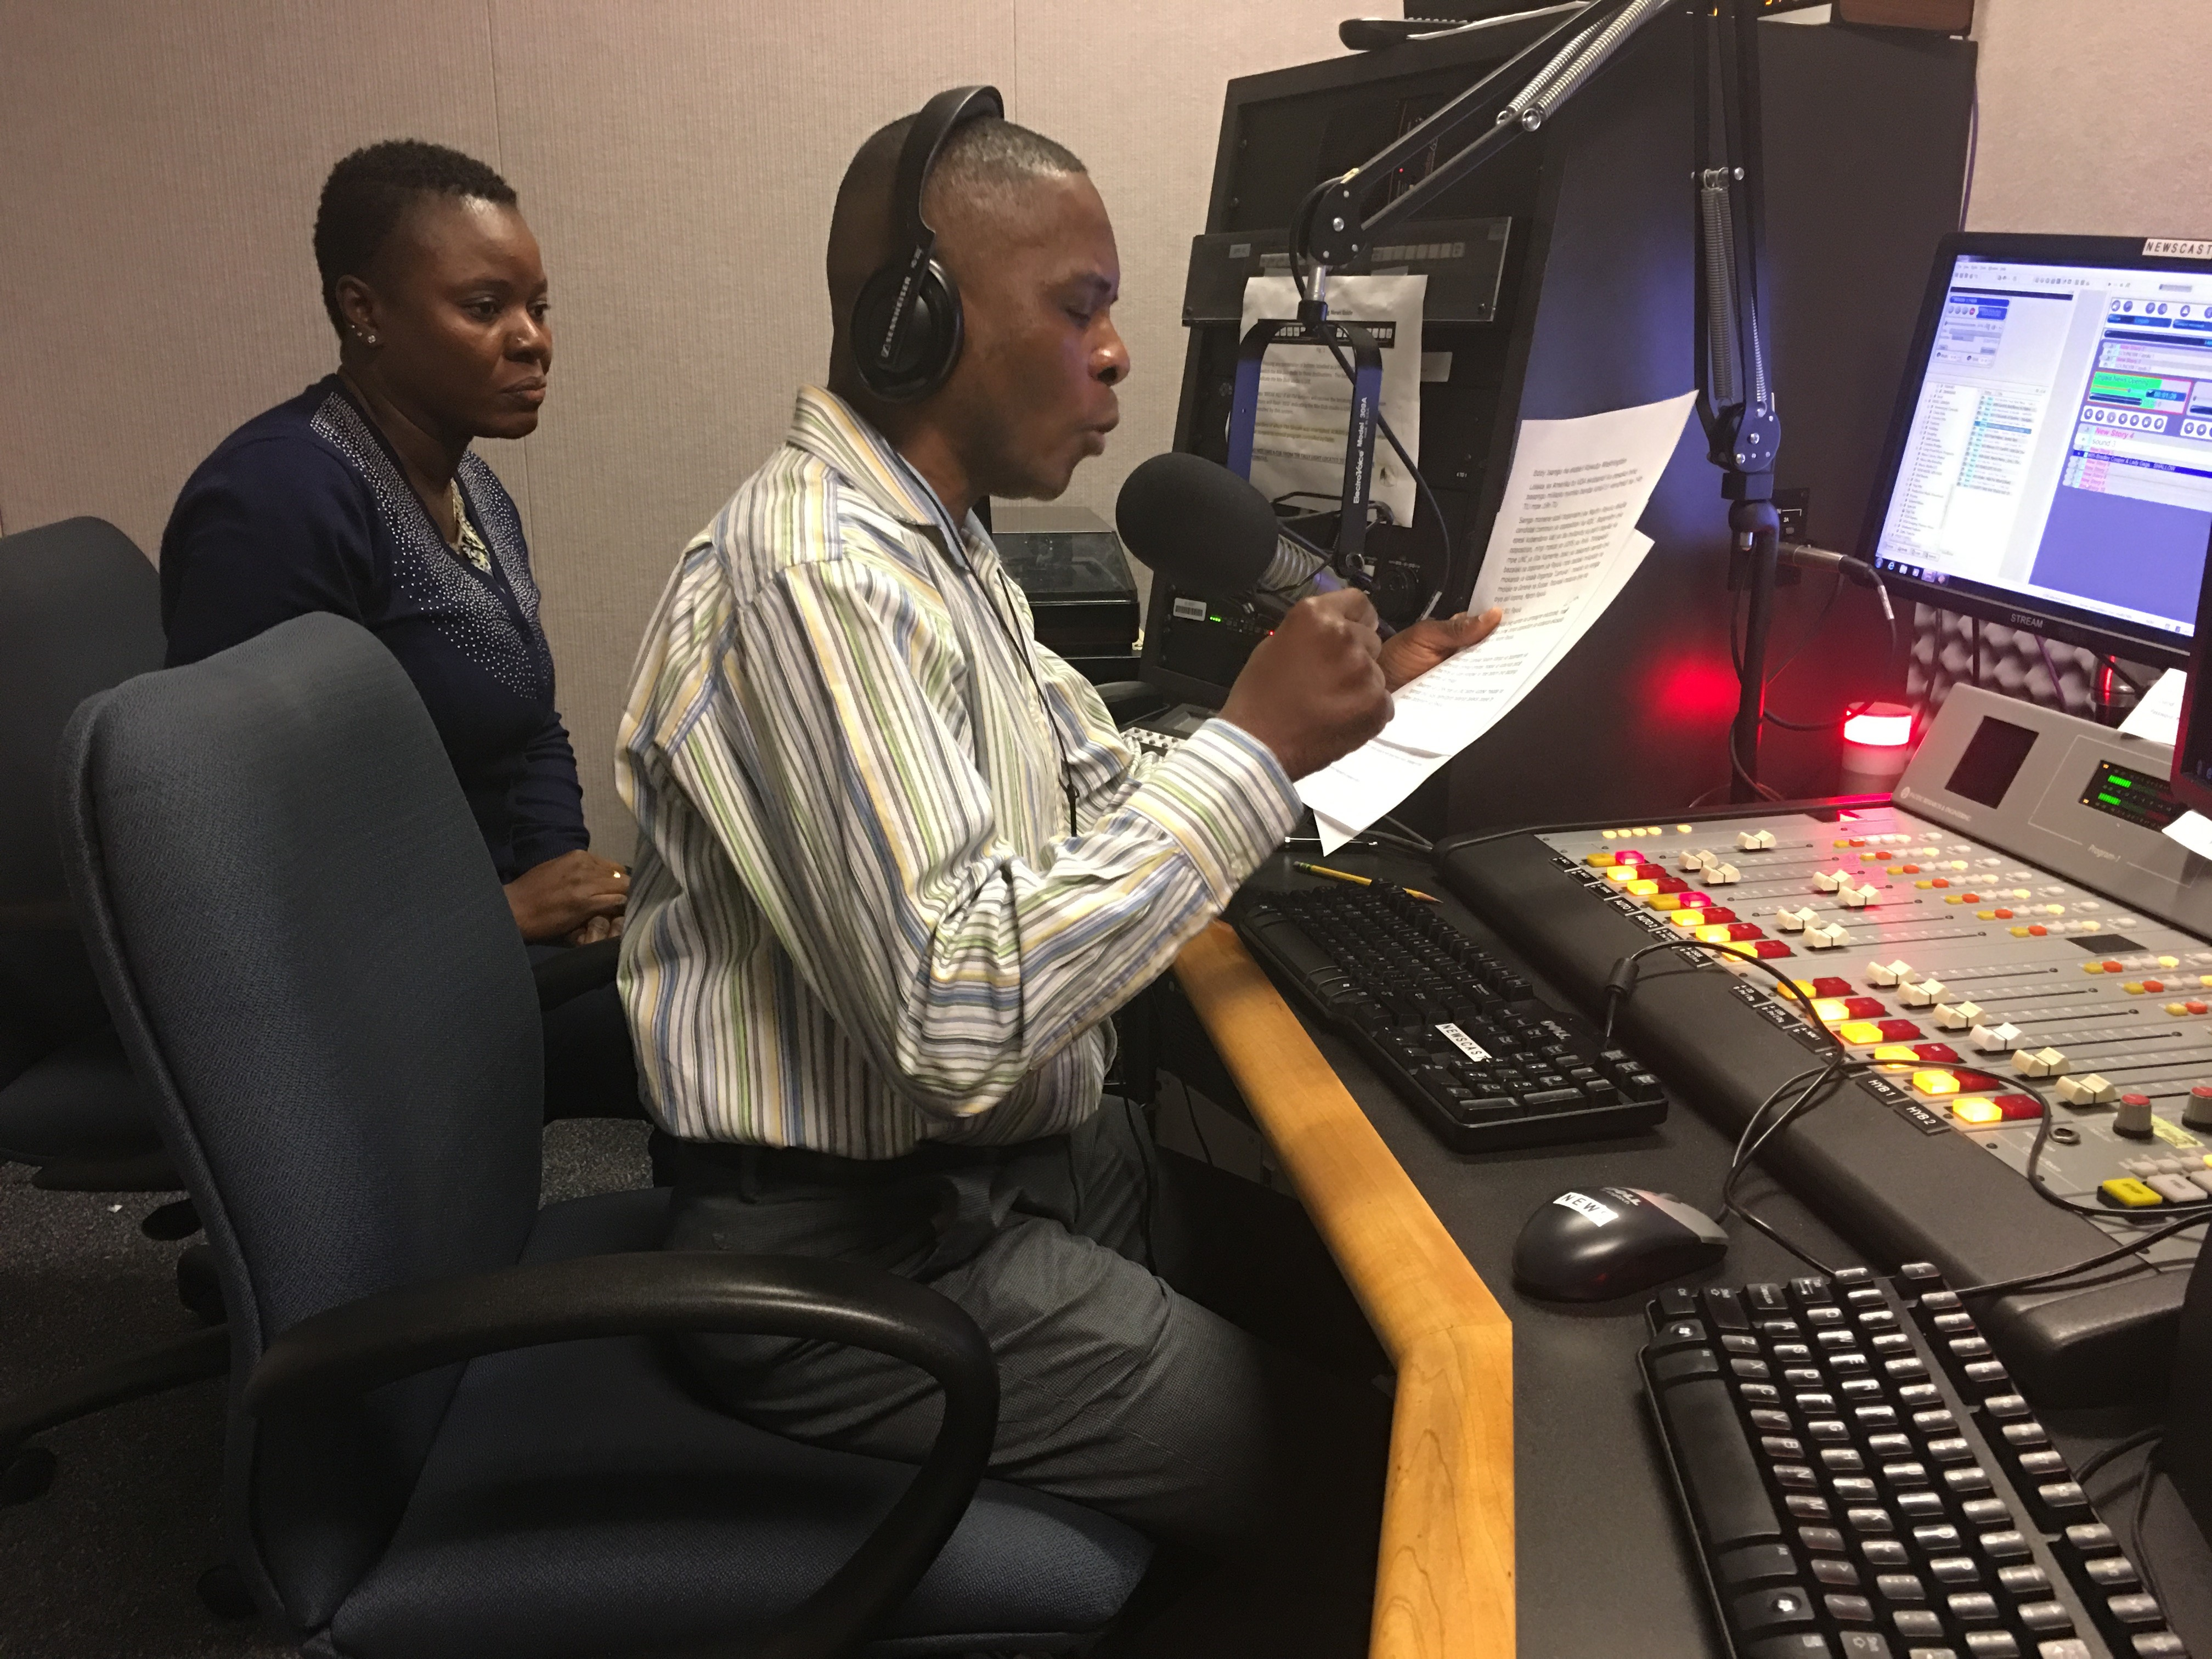 VOA begins broadcasting in Lingala language